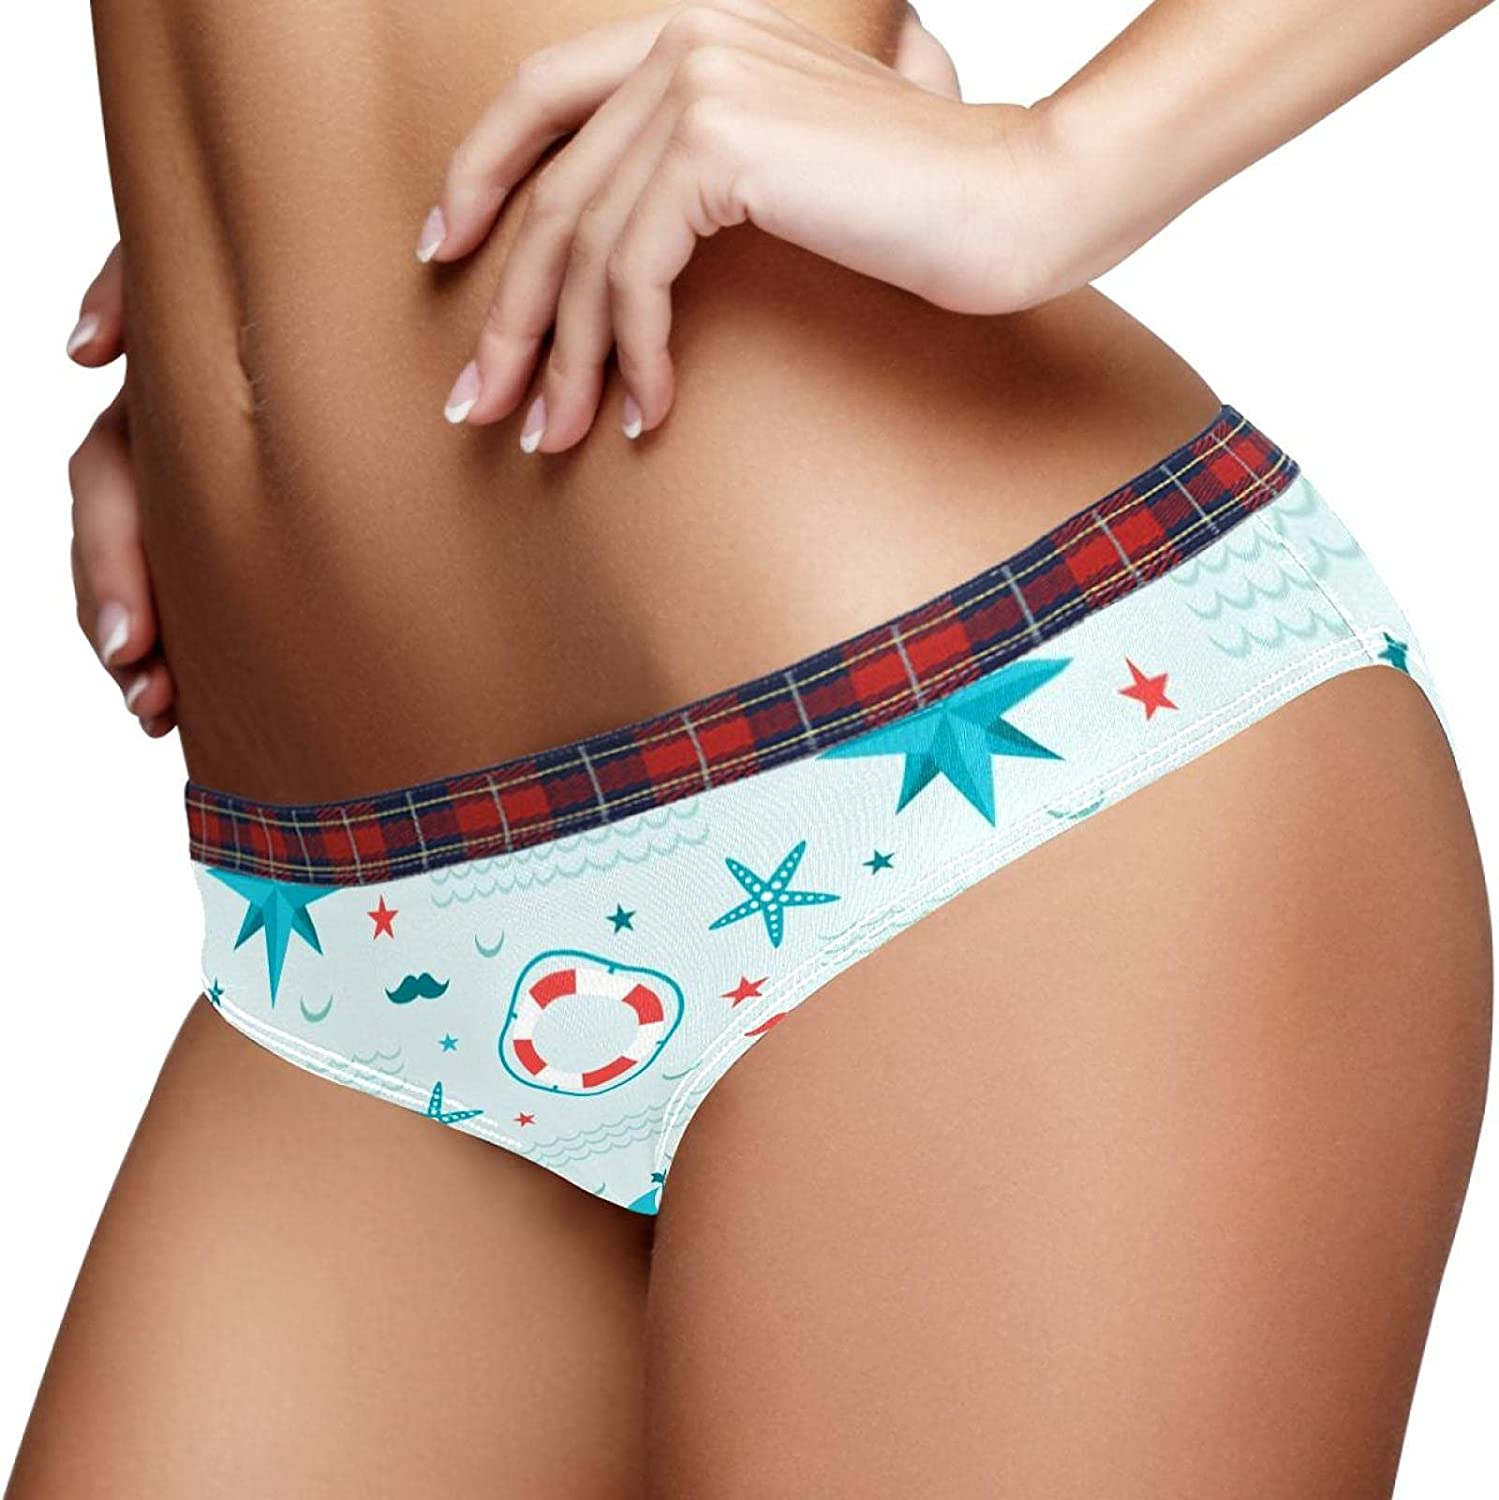 Women Hipster Panties Soft New sales Girl Briefs Free shipping / New Comfortable Underw Ladies